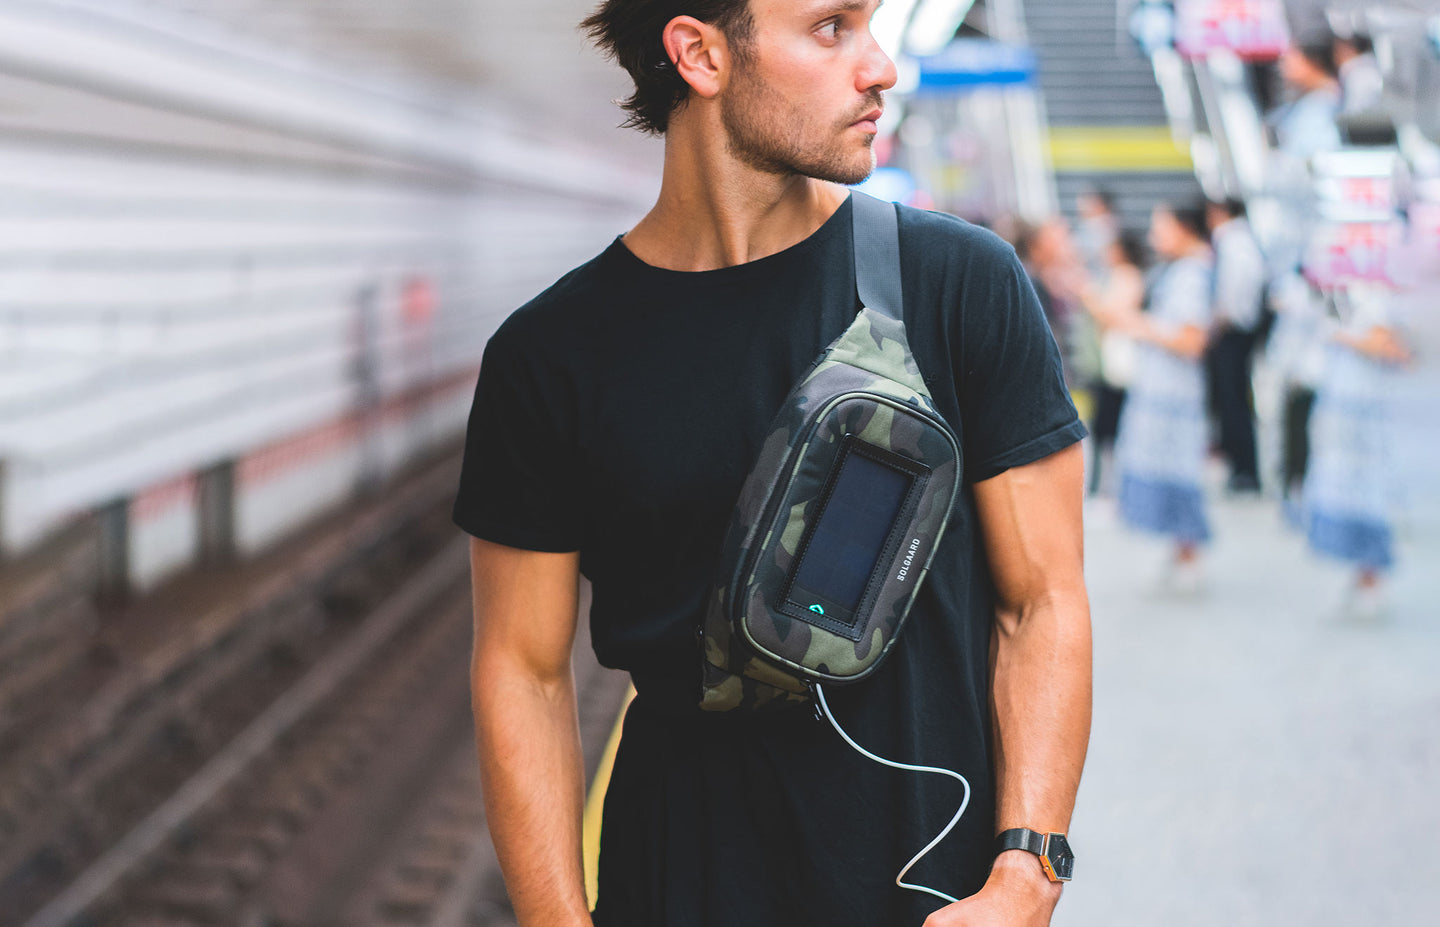 Premium, travel fanny pack with solar charger for global citizens